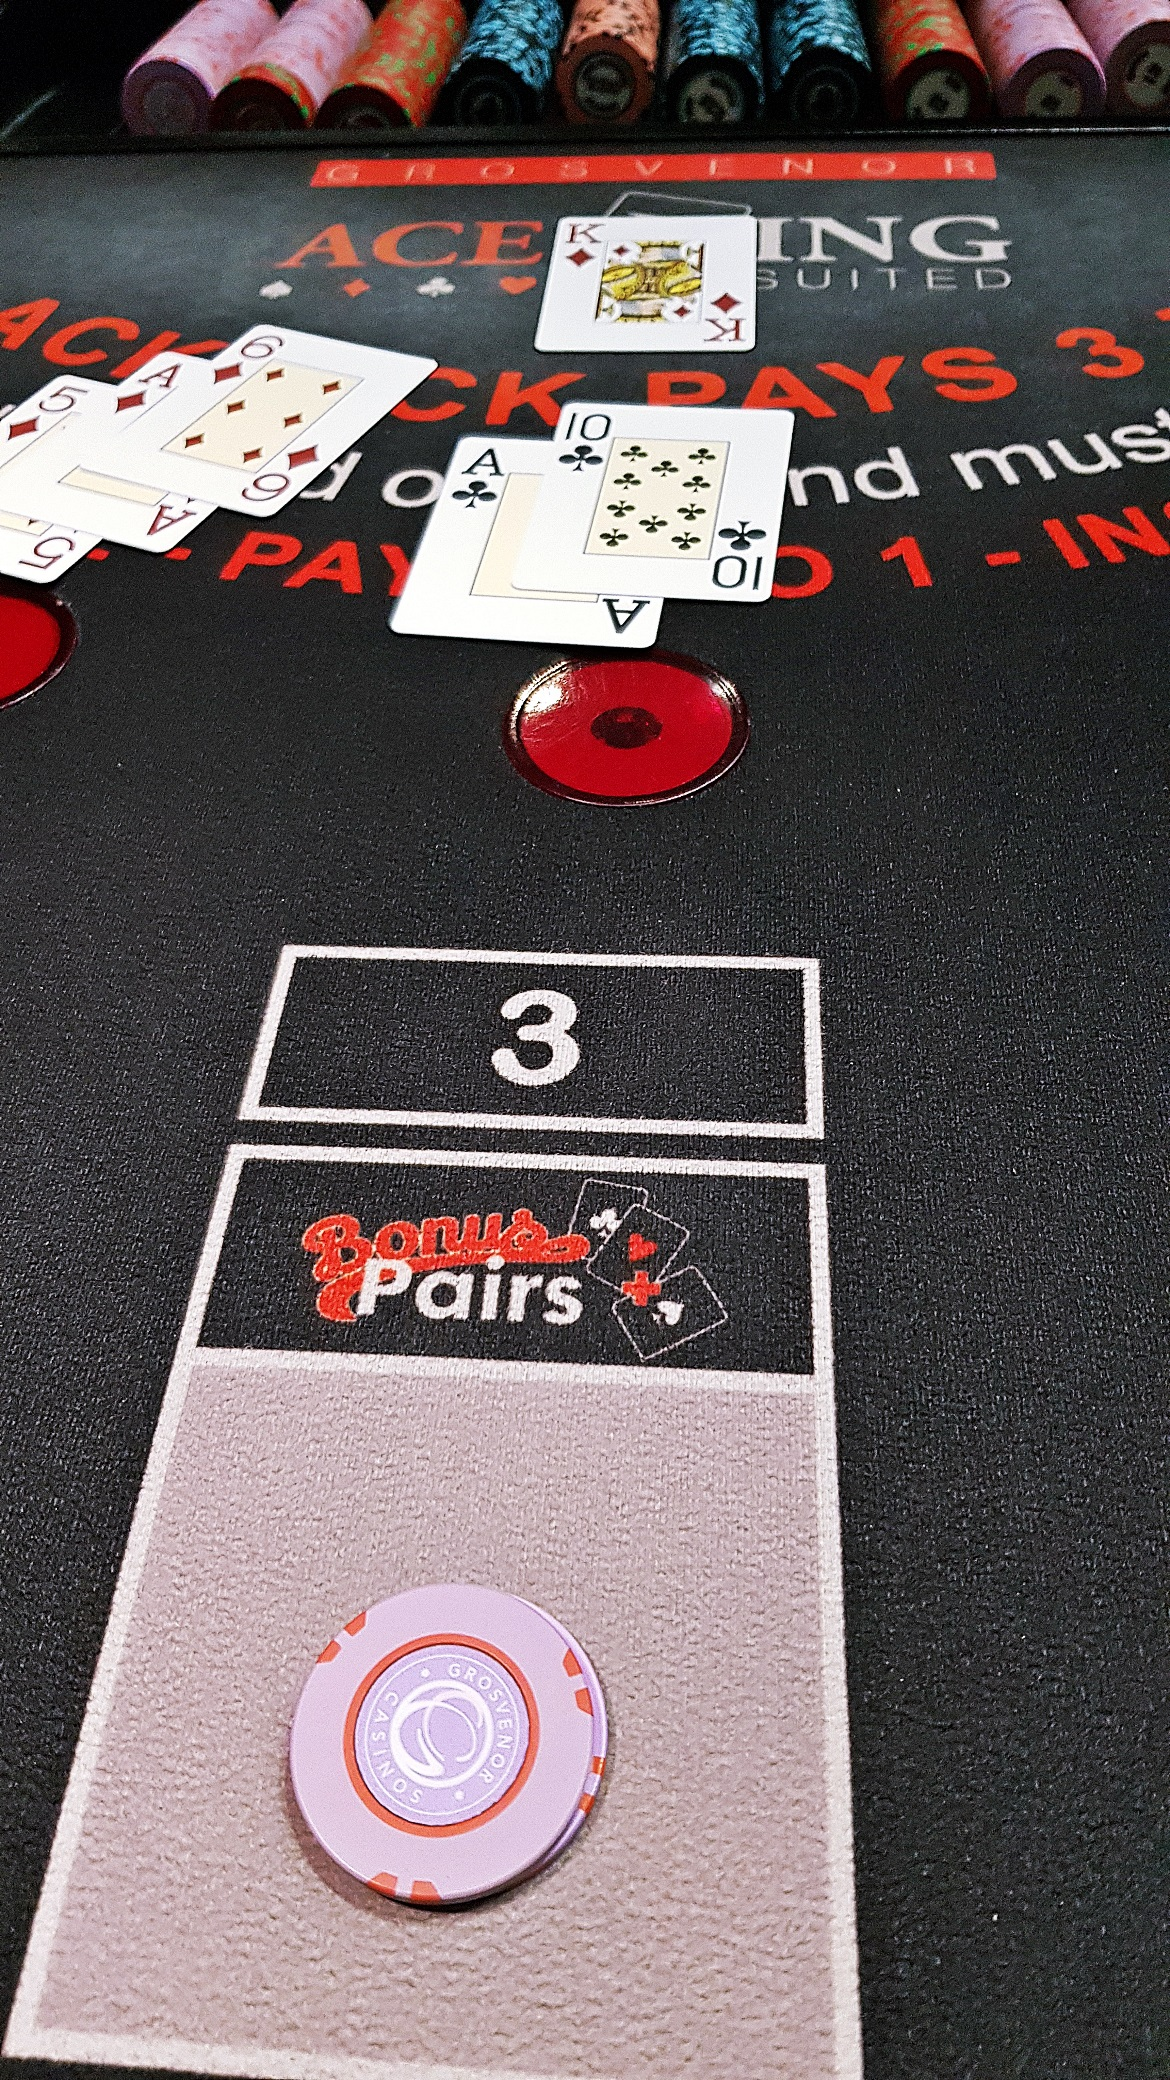 Playing blackjack with real money - Grosvenor Casino Leeds review by BeckyBecky Blogs